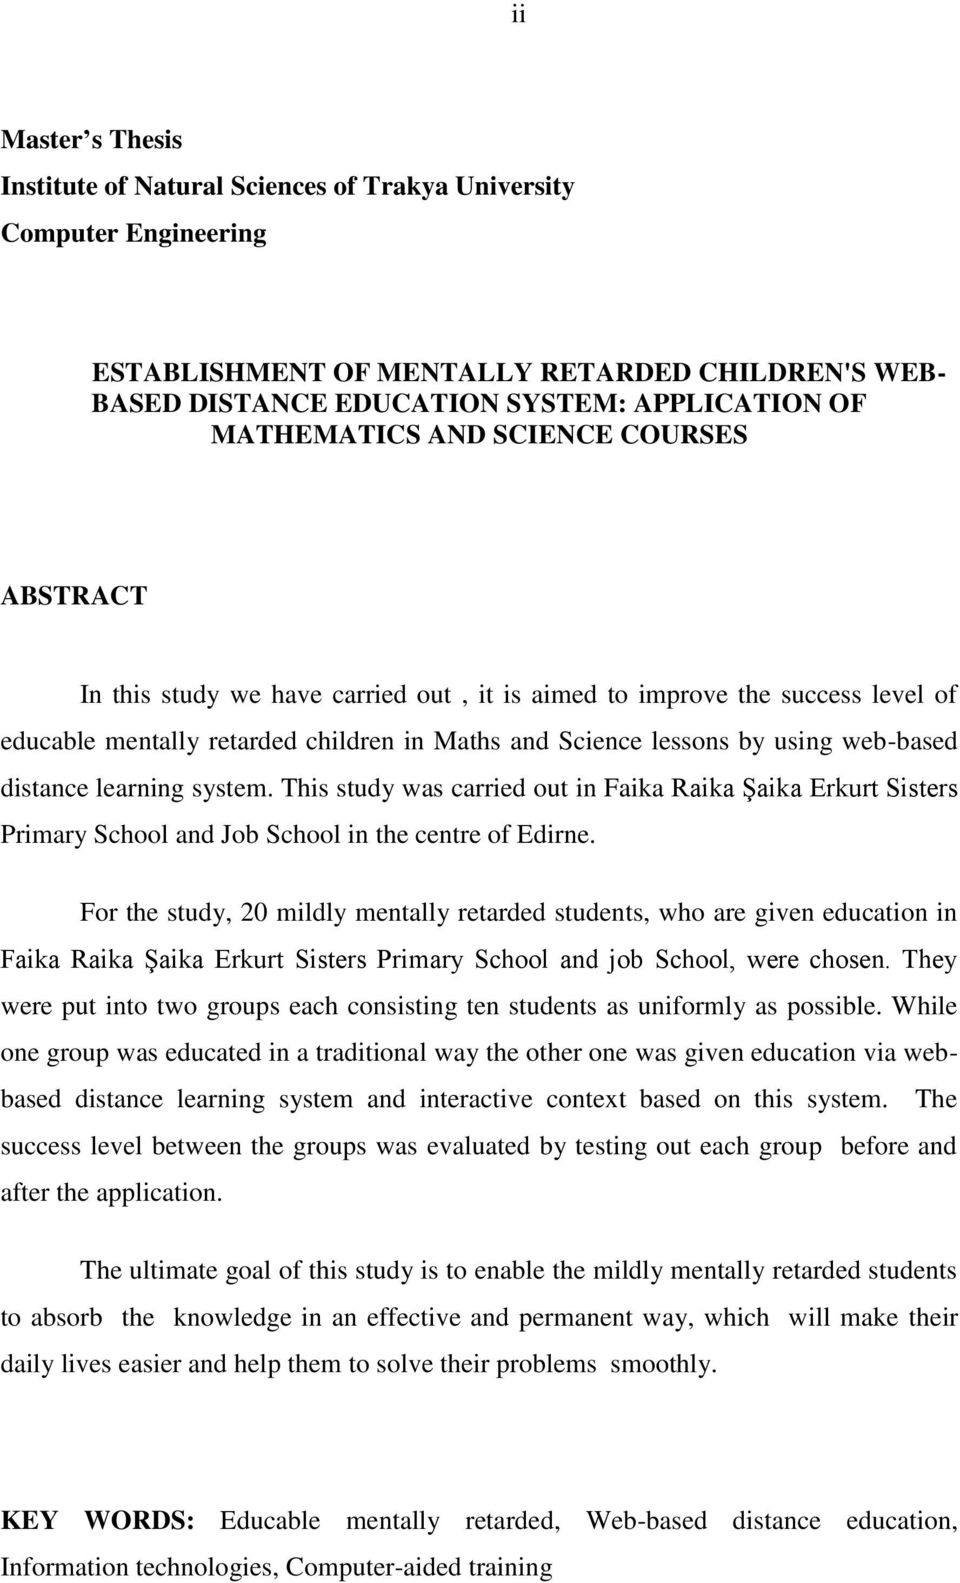 webbased distance learning system. This study was carried out in Faika Raika ġaika Erkurt Sisters Primary School and Job School in the centre of Edirne.